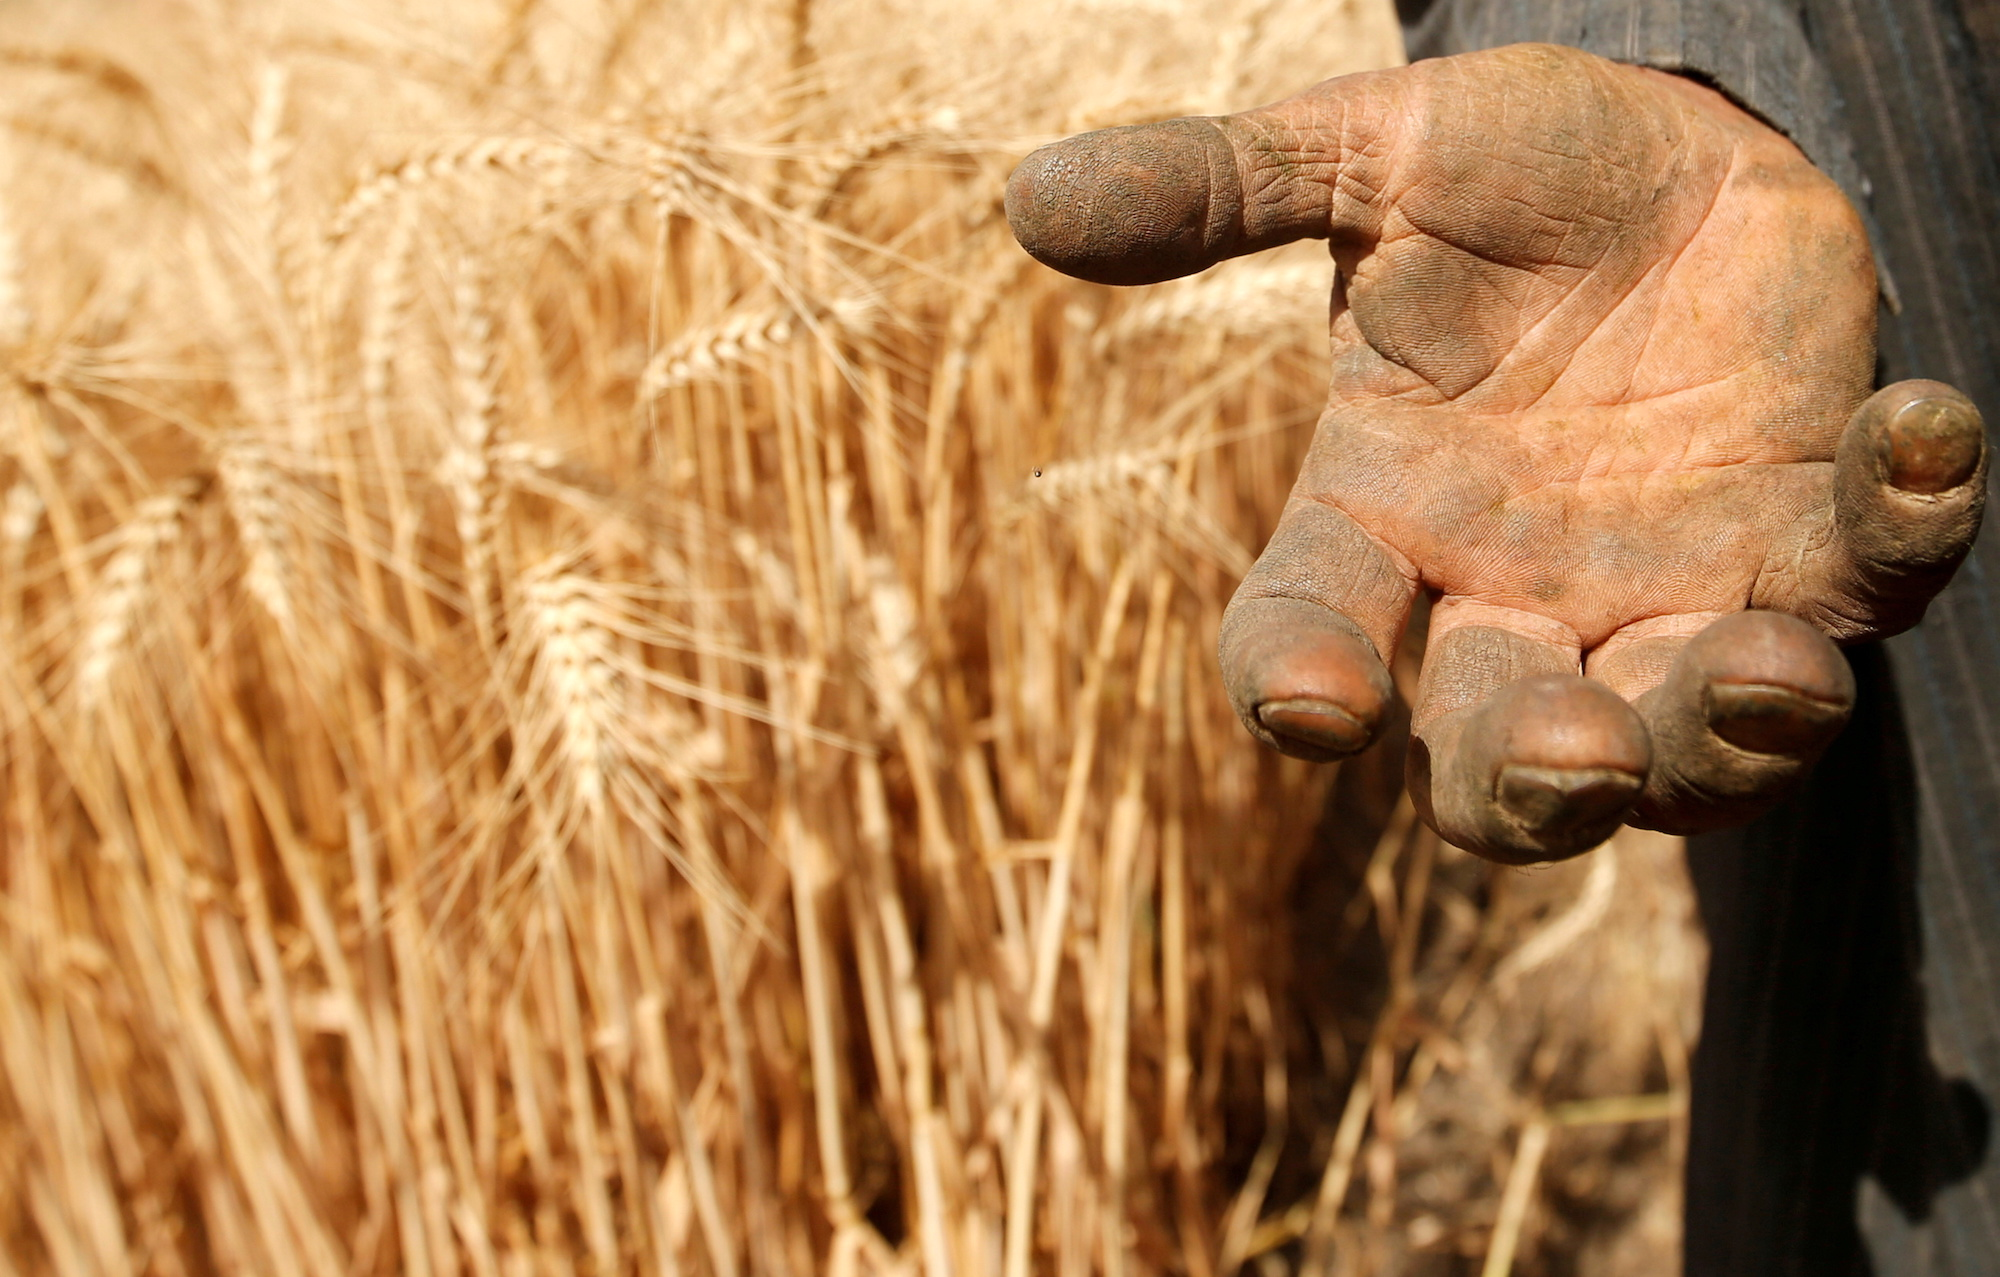 Food prices file photo: A farmer shows his hand as he harvests wheat on Qalyub farm in the El-Kalubia governorate, northeast of Cairo, Egypt